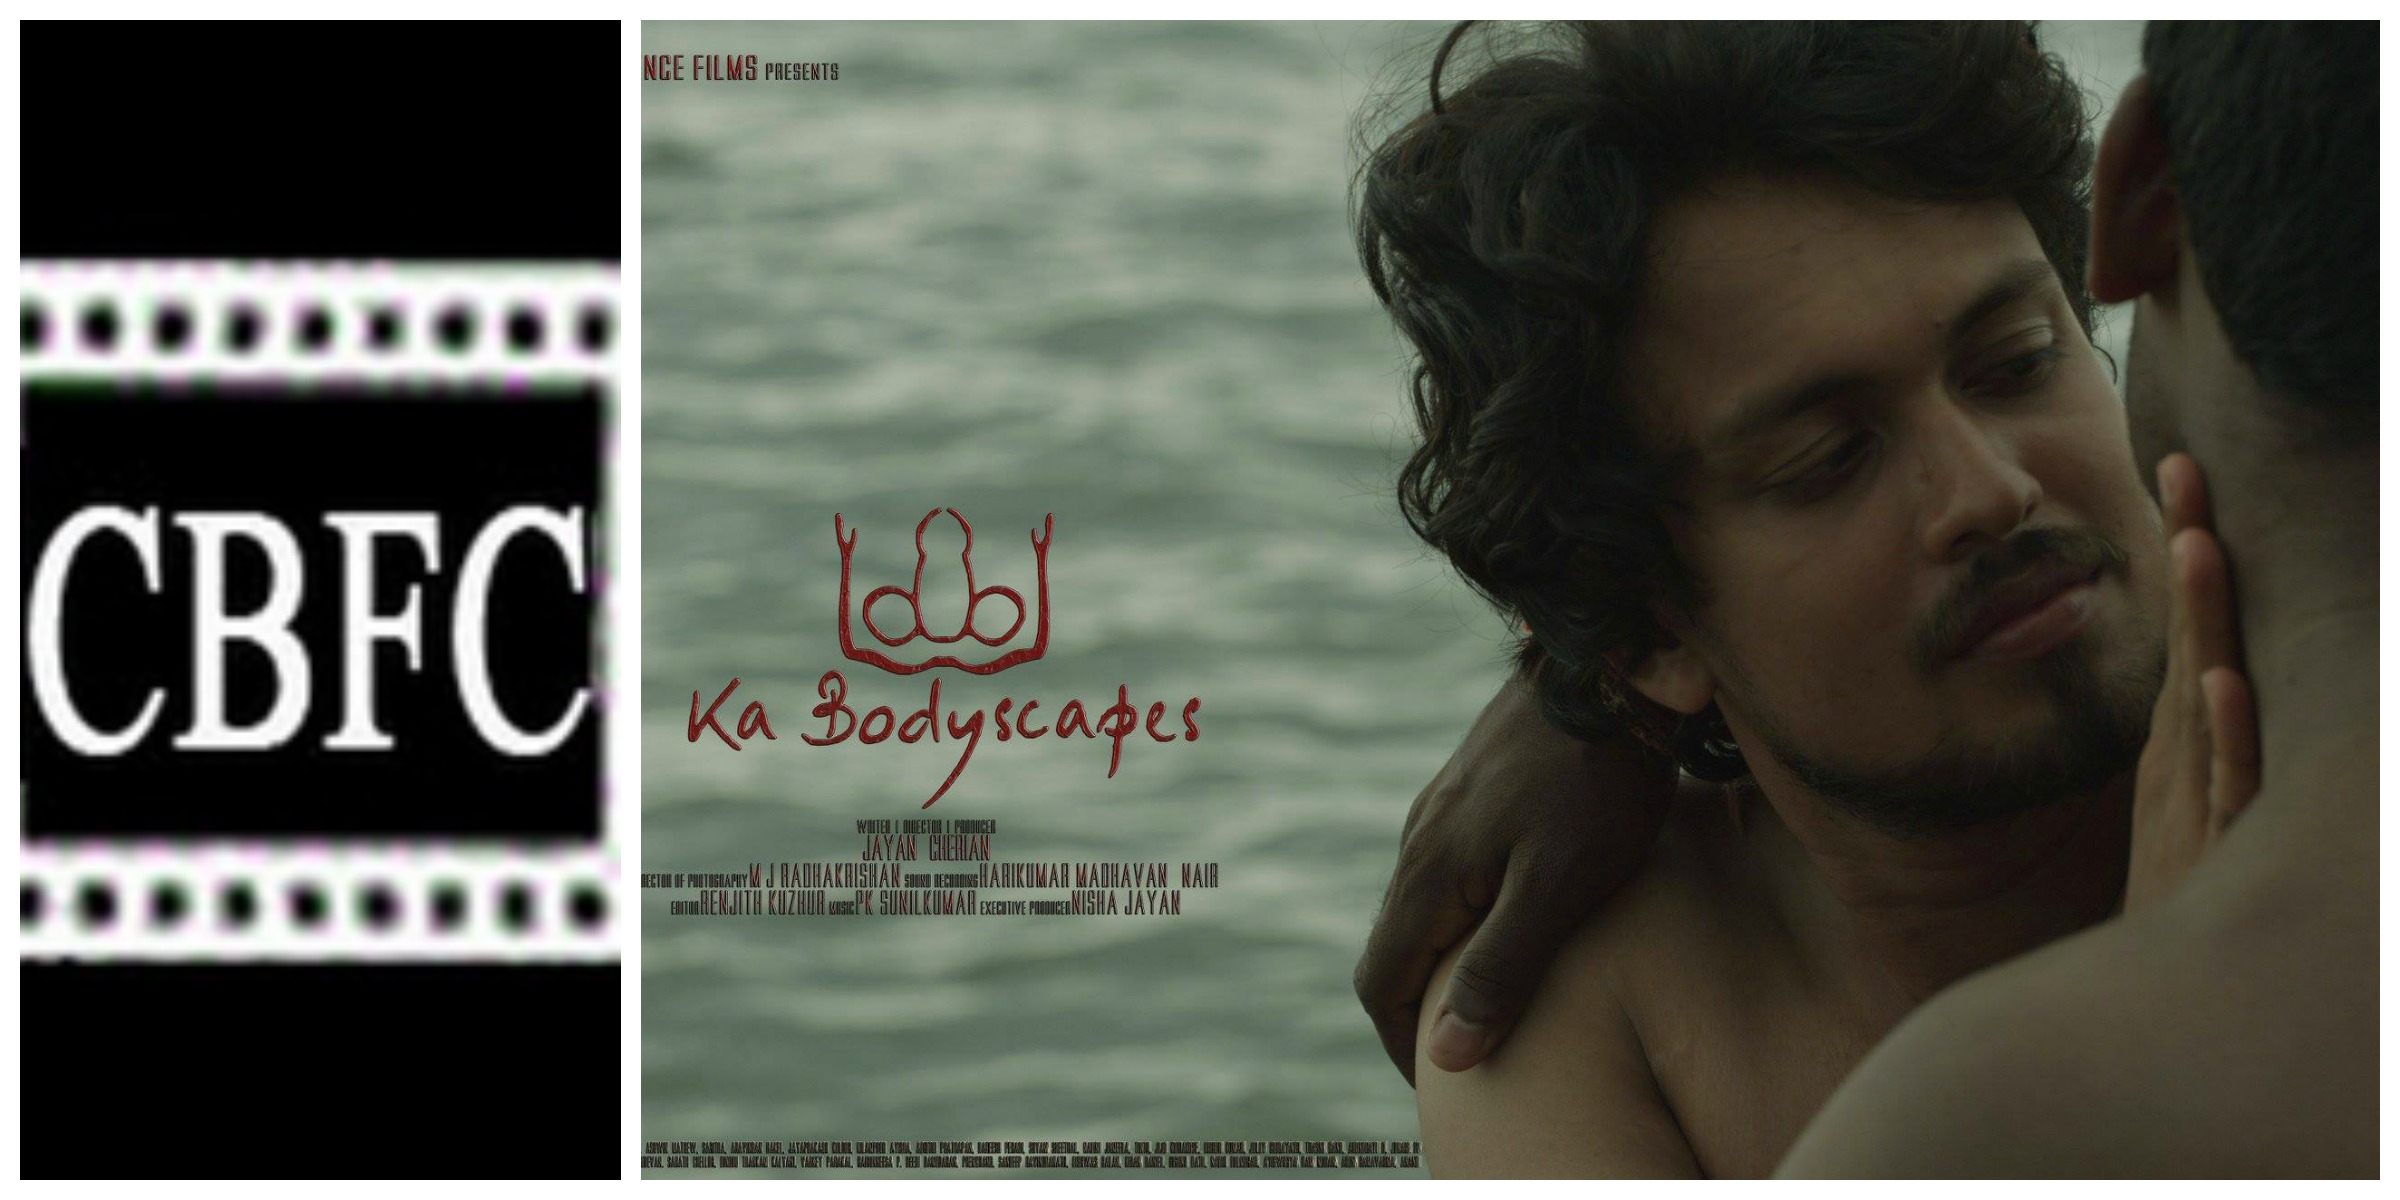 Ka Bodyscapes Denied Certificate For Gay Theme